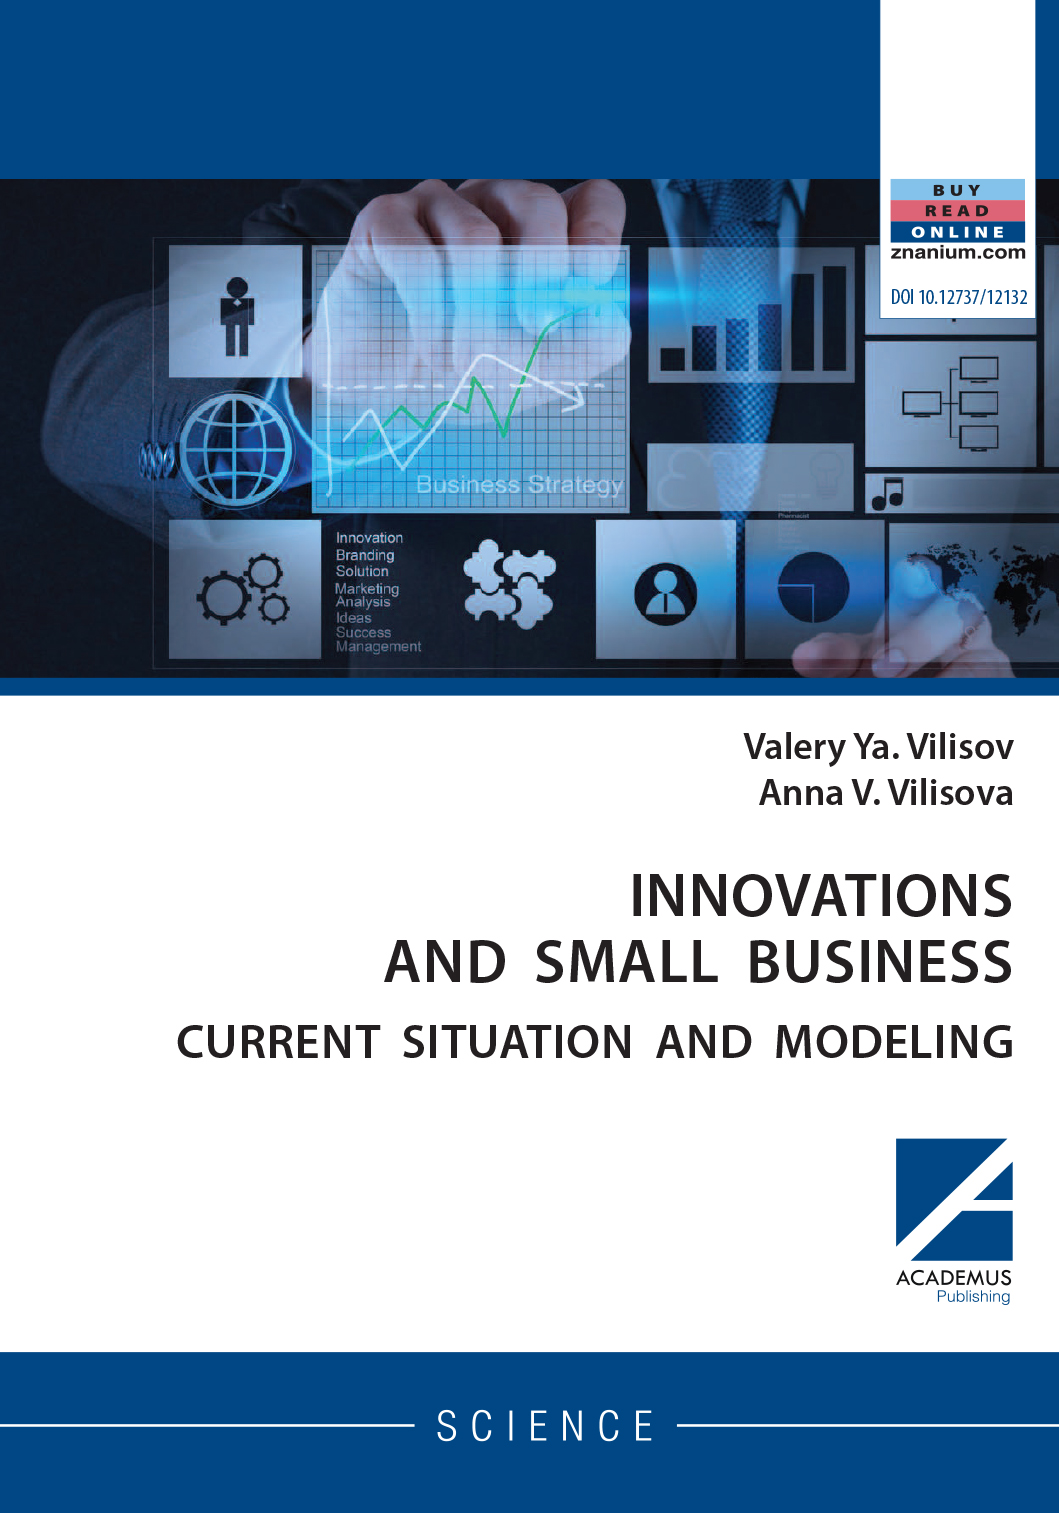 INNOVATIONS AND SMALL BUSINESS: Current situation and modeling